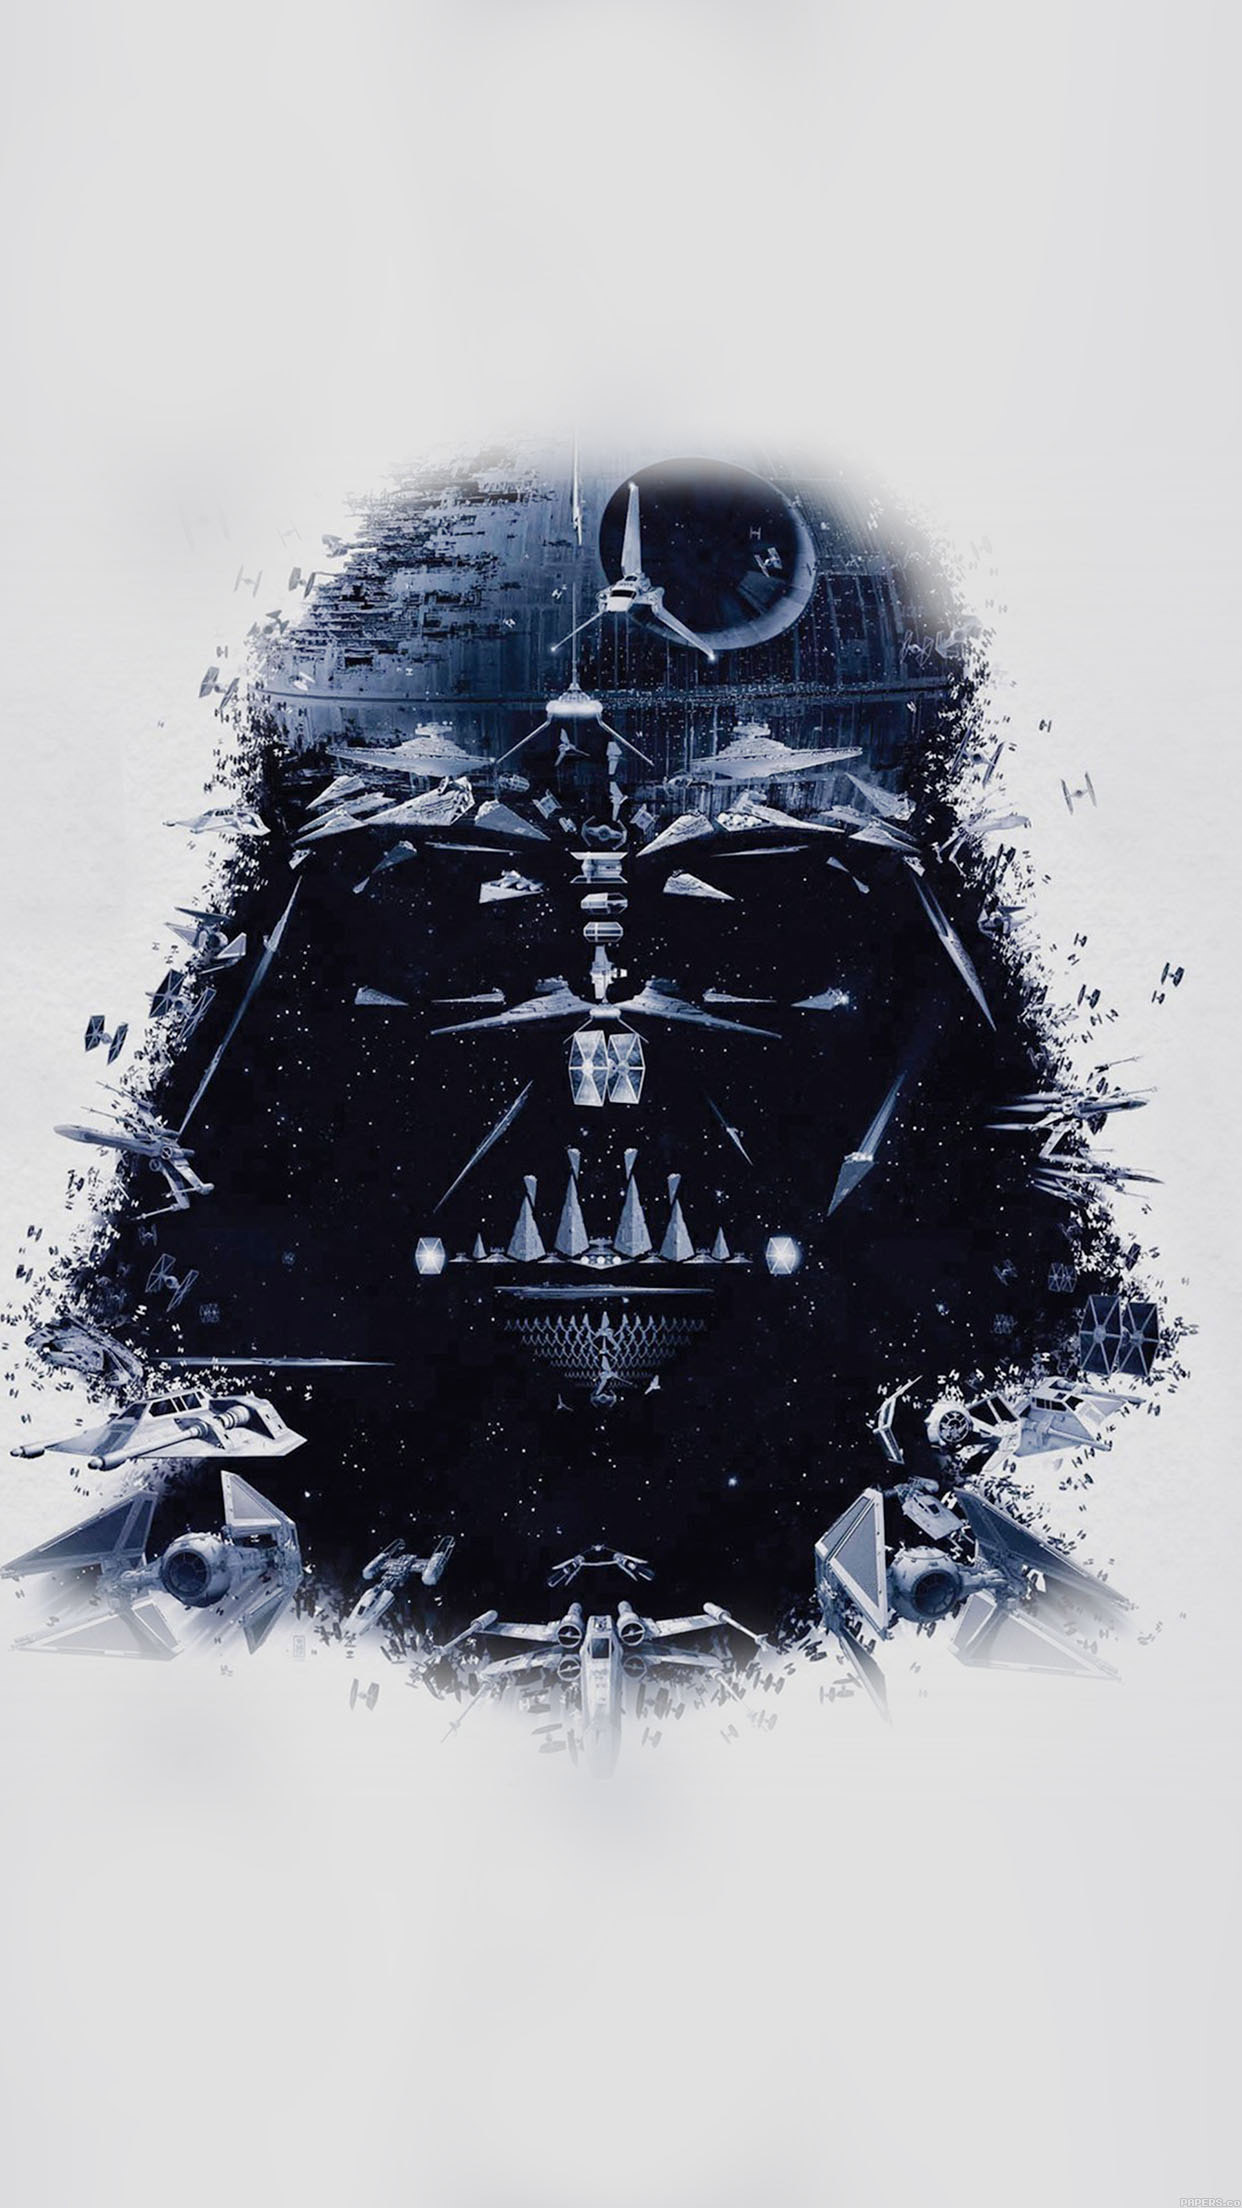 wallpaper-darth-vader-art-star-wars-illust-34-iphone6-plus-wallpaper